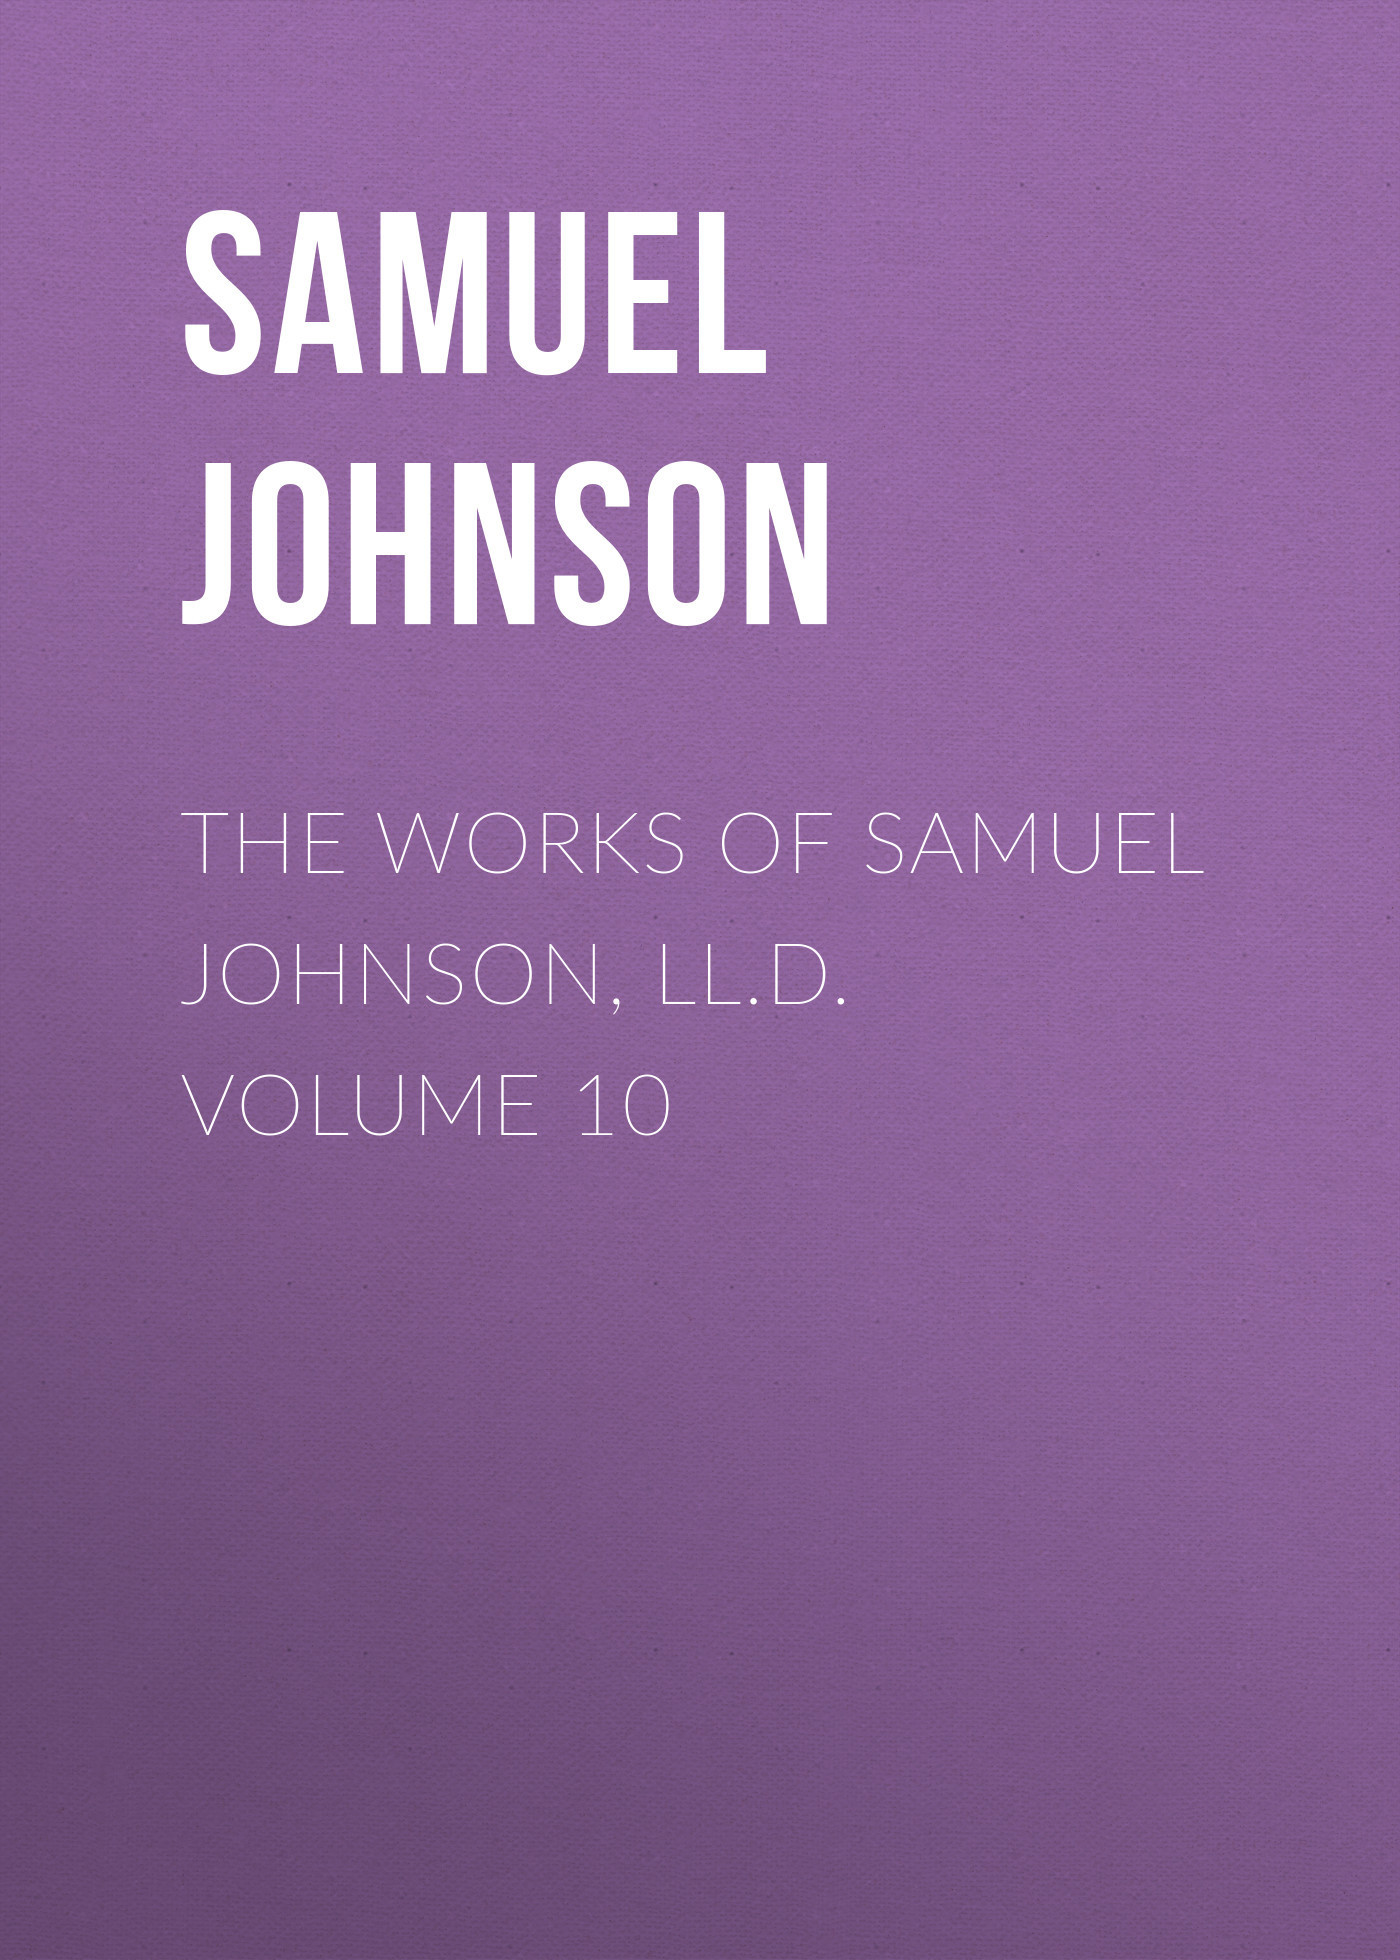 Samuel Johnson The Works of Samuel Johnson, LL.D. Volume 10 sir samuel samuel sir vize pli o